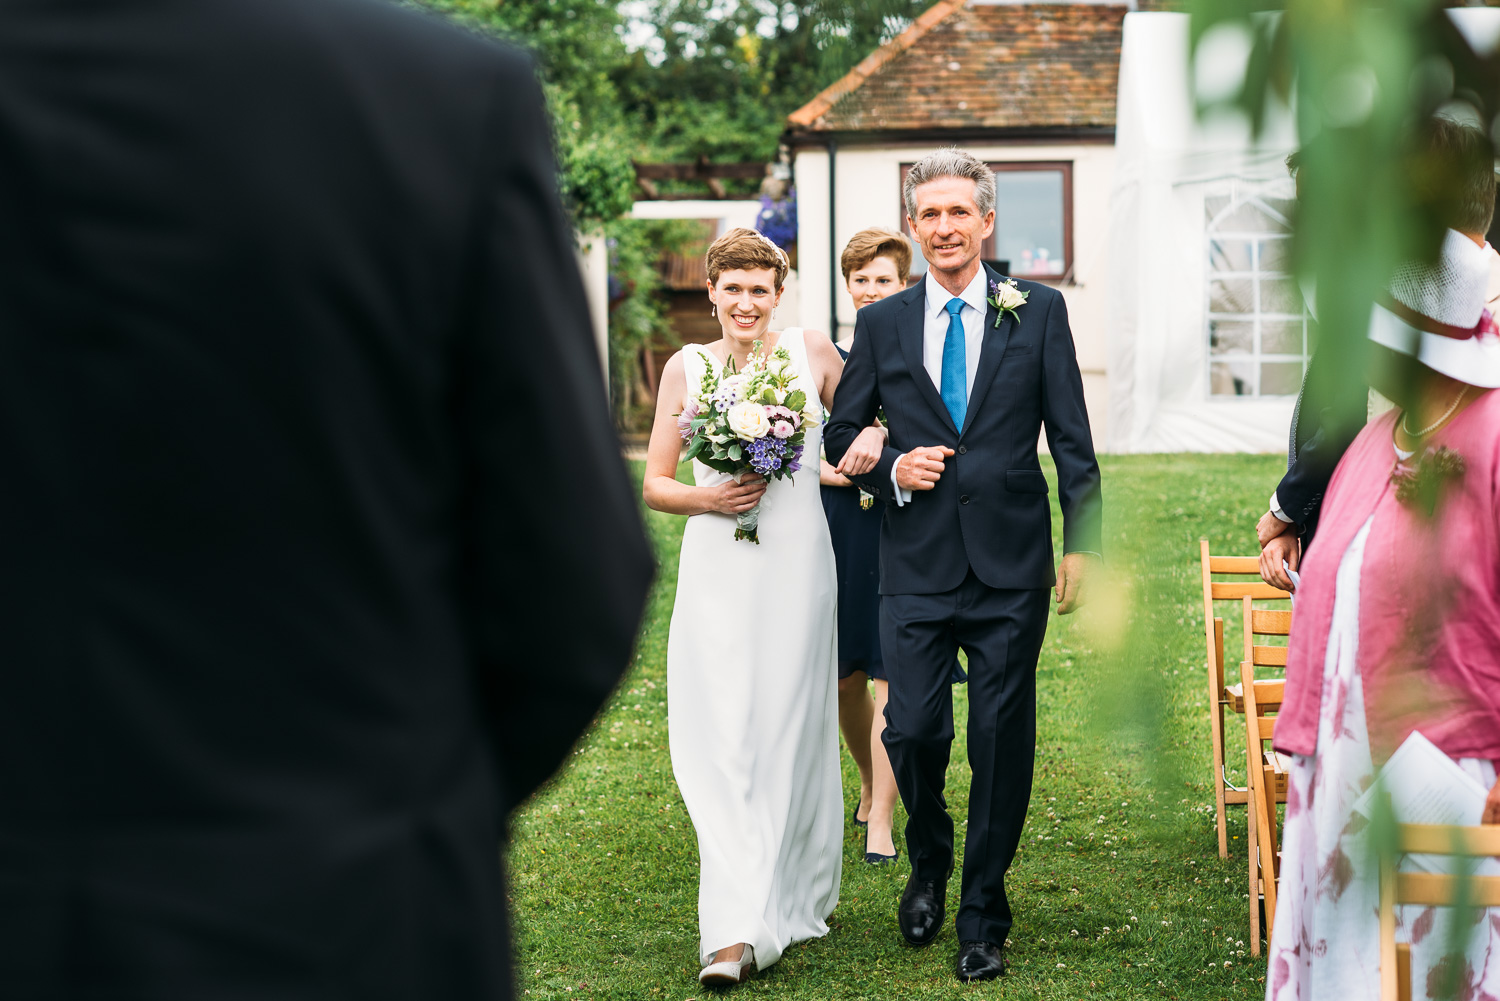 back-garden-wedding-19.jpg